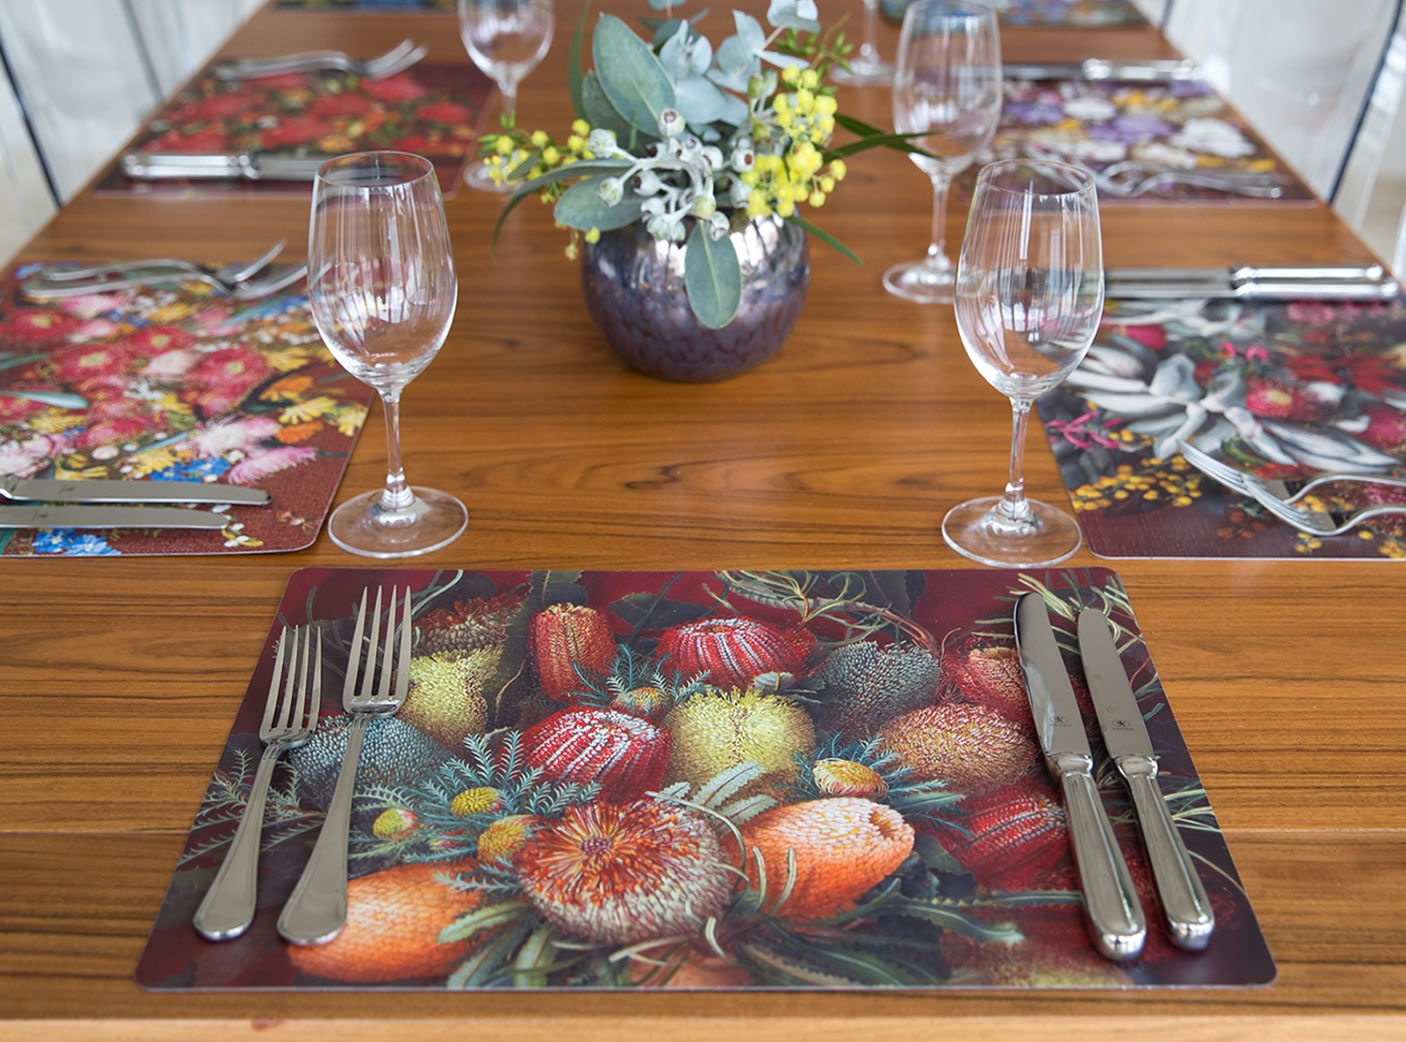 wildflowers-placemat-2_2088313526